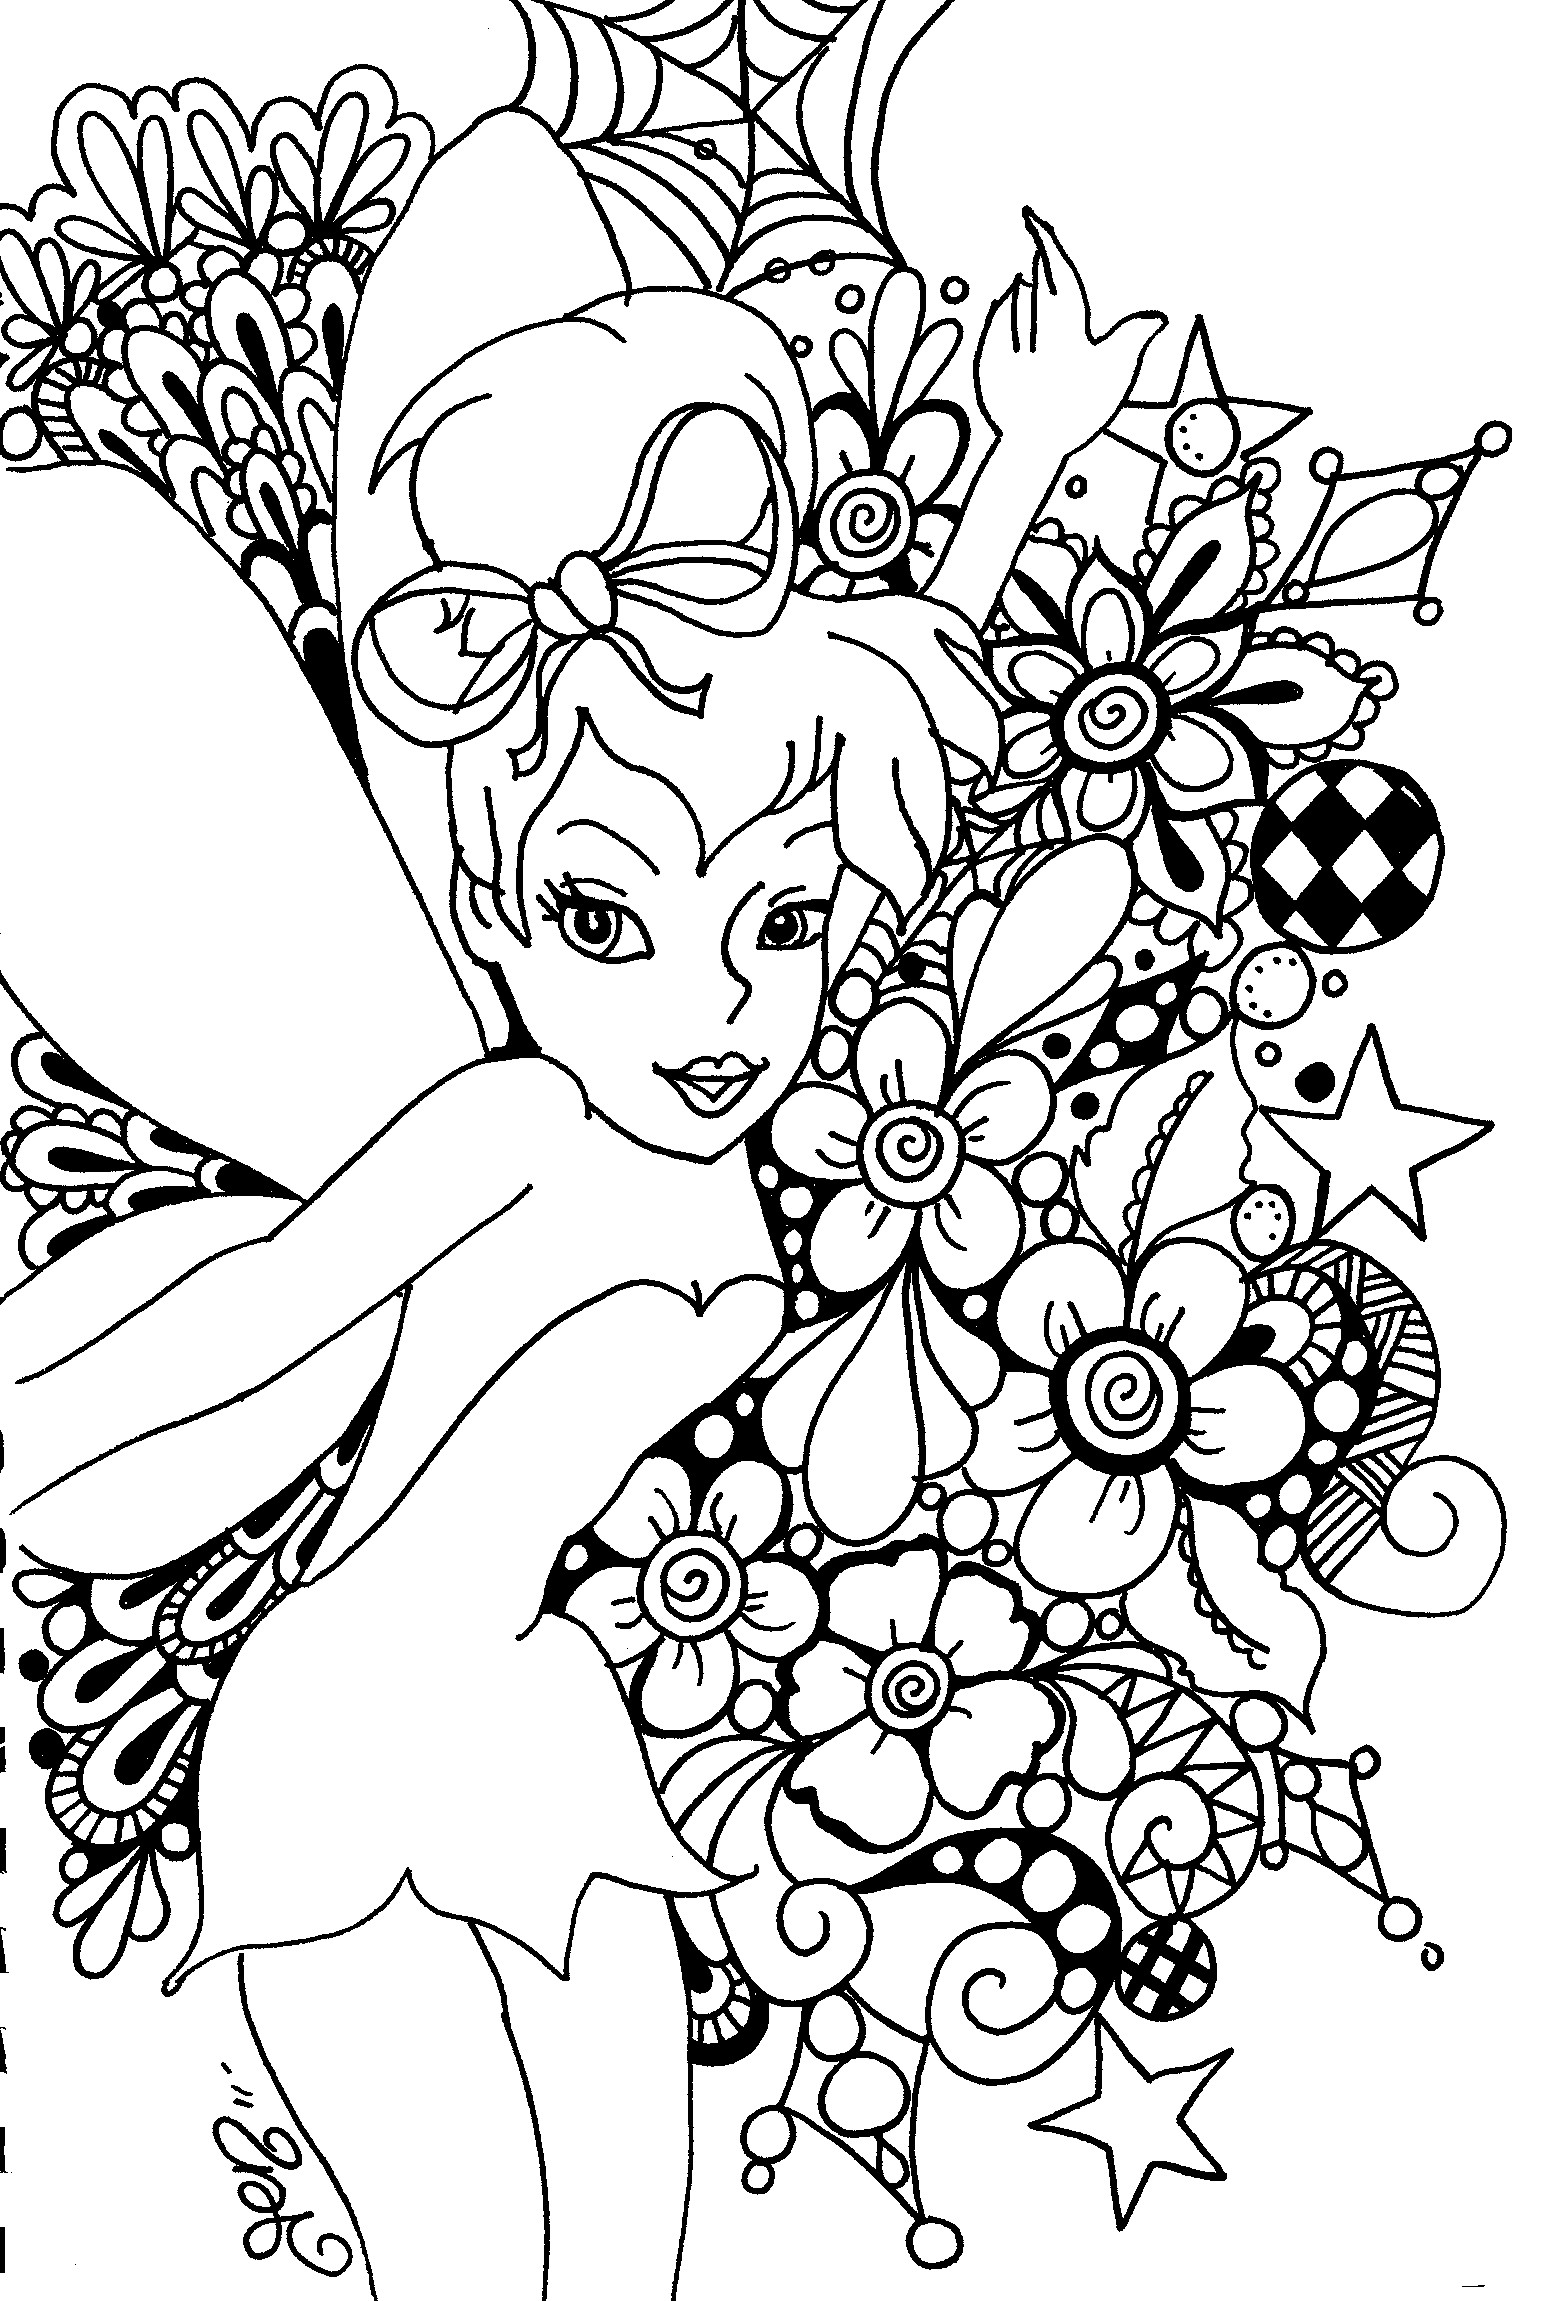 8 Images of Free Printable Tinkerbell Coloring